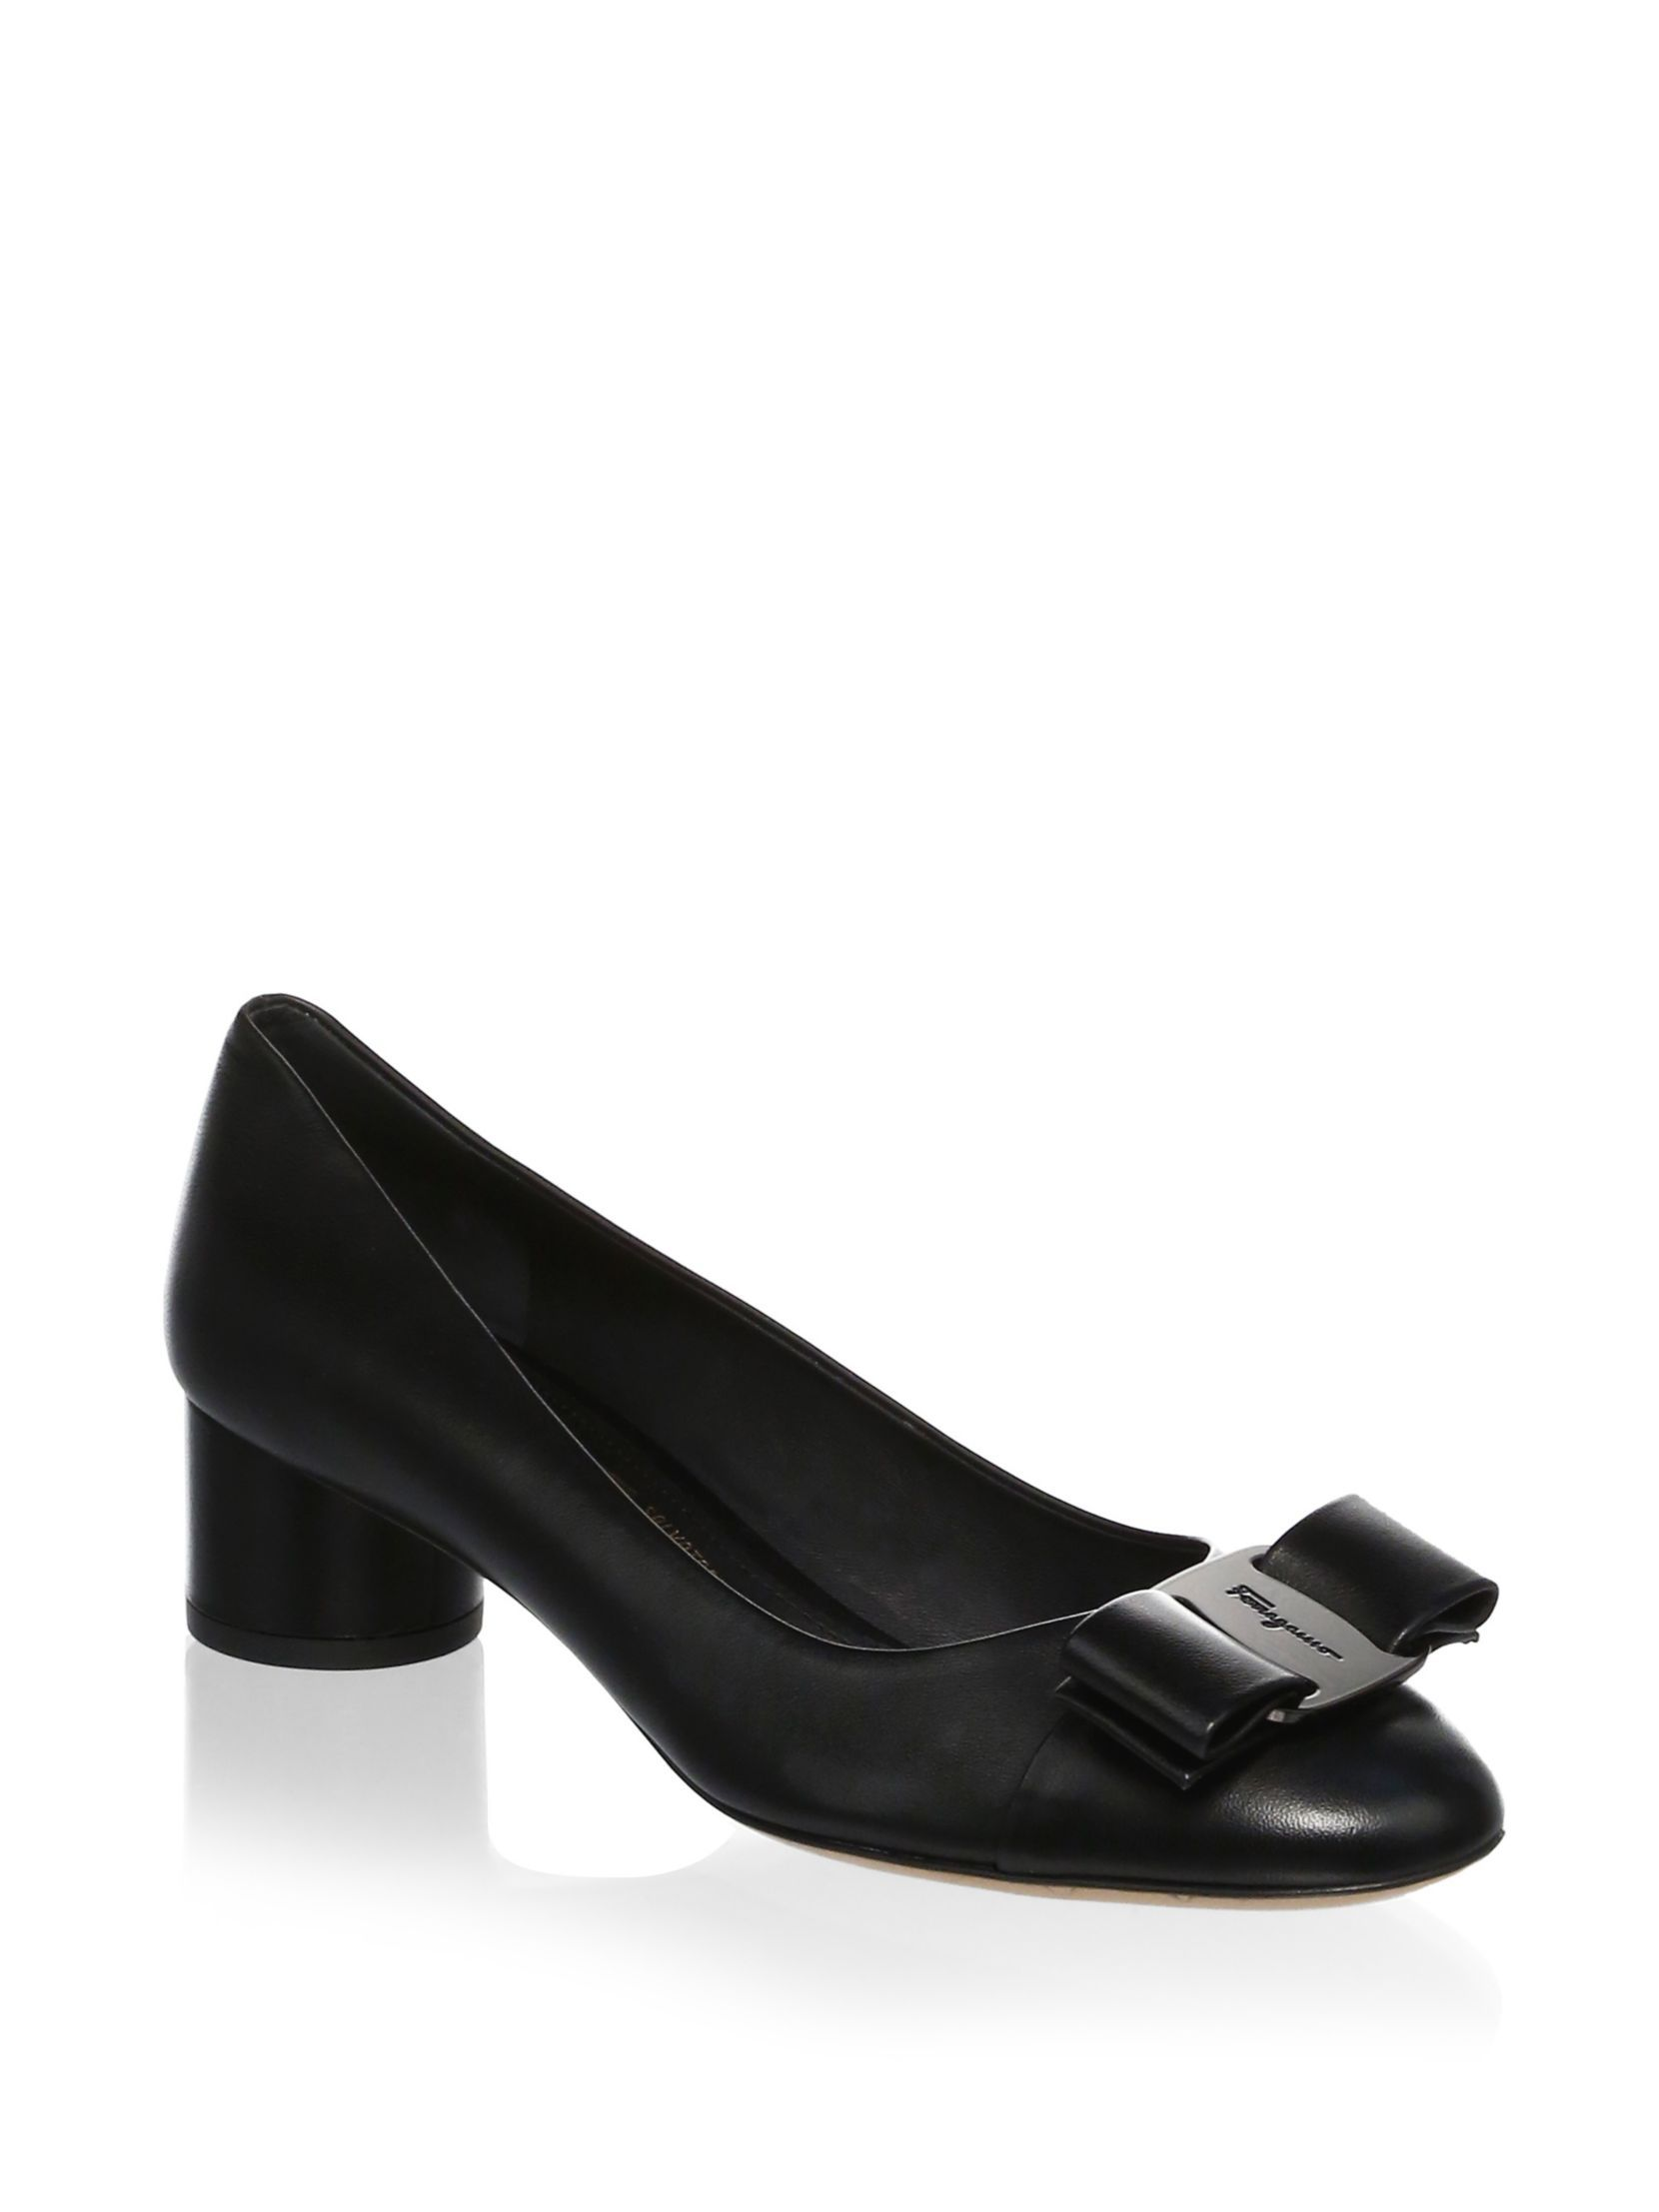 Salvatore Ferragamo Slip-On Leather Pumps G5Gv3waSm